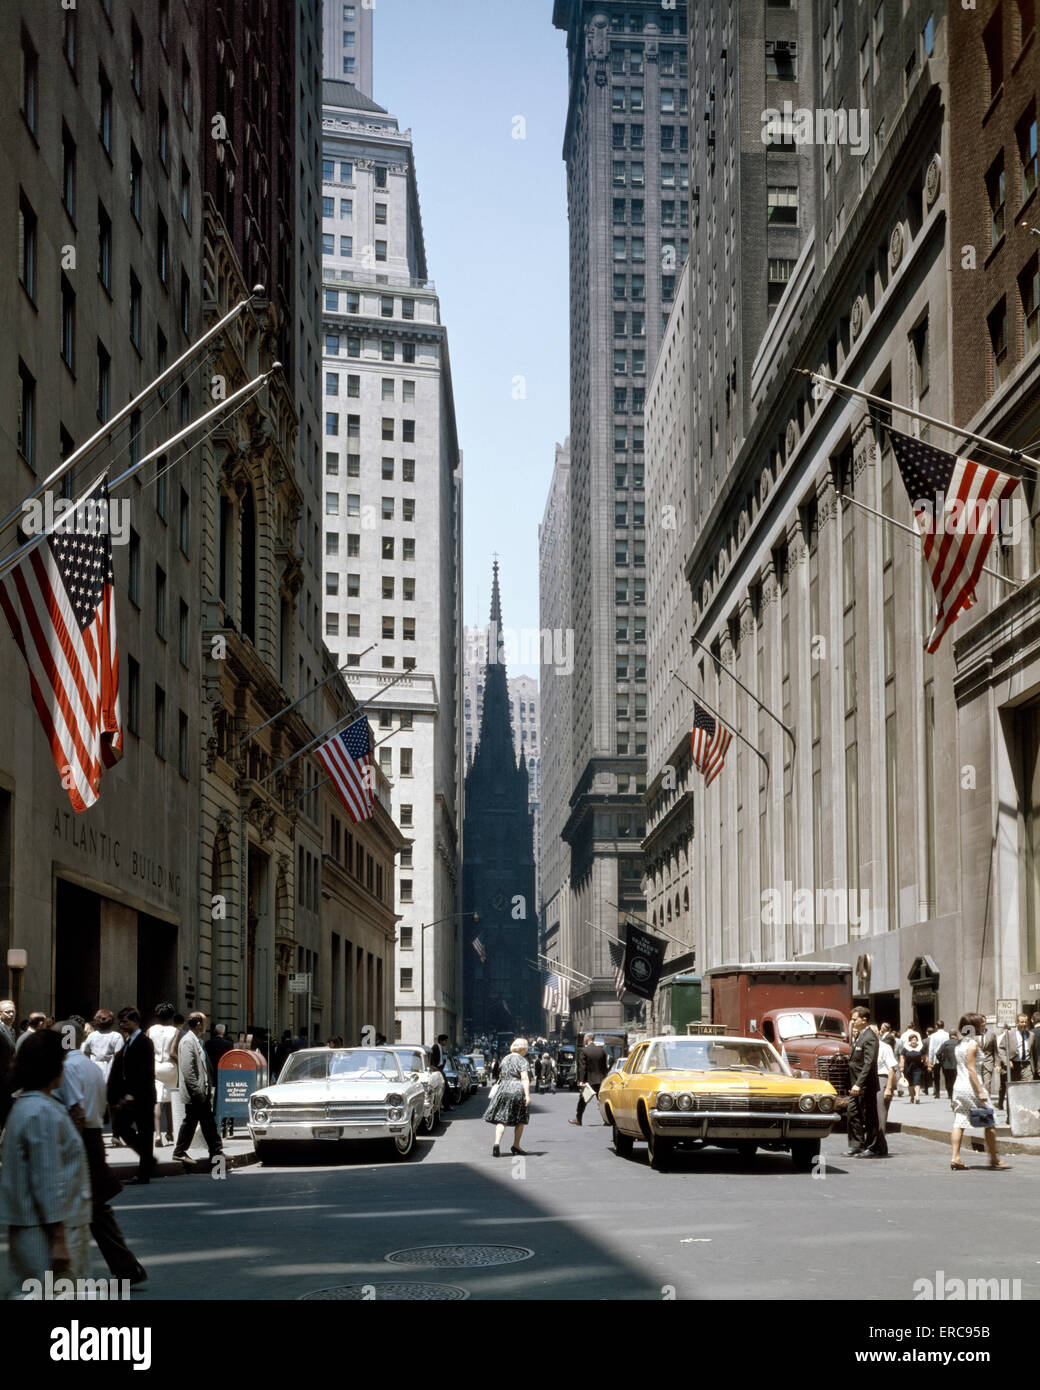 1960ER JAHRE BLICK AUF WALL STREET, TRINITY CHURCH DOWNTOWN MANHATTAN NEW YORK CITY USA Stockfoto